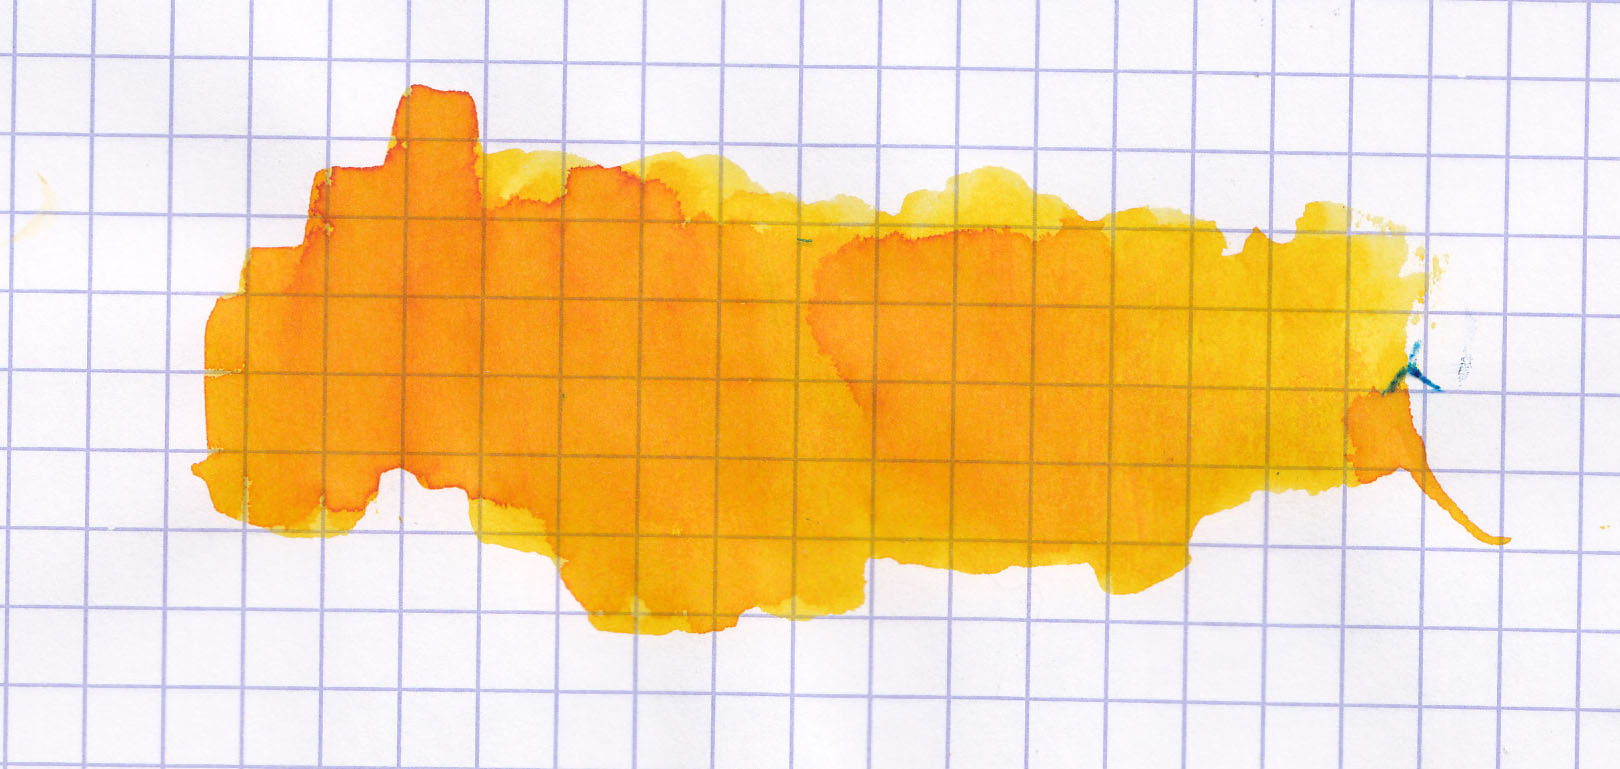 fpn_1465744512__yellows_rhodia_ox3.jpg